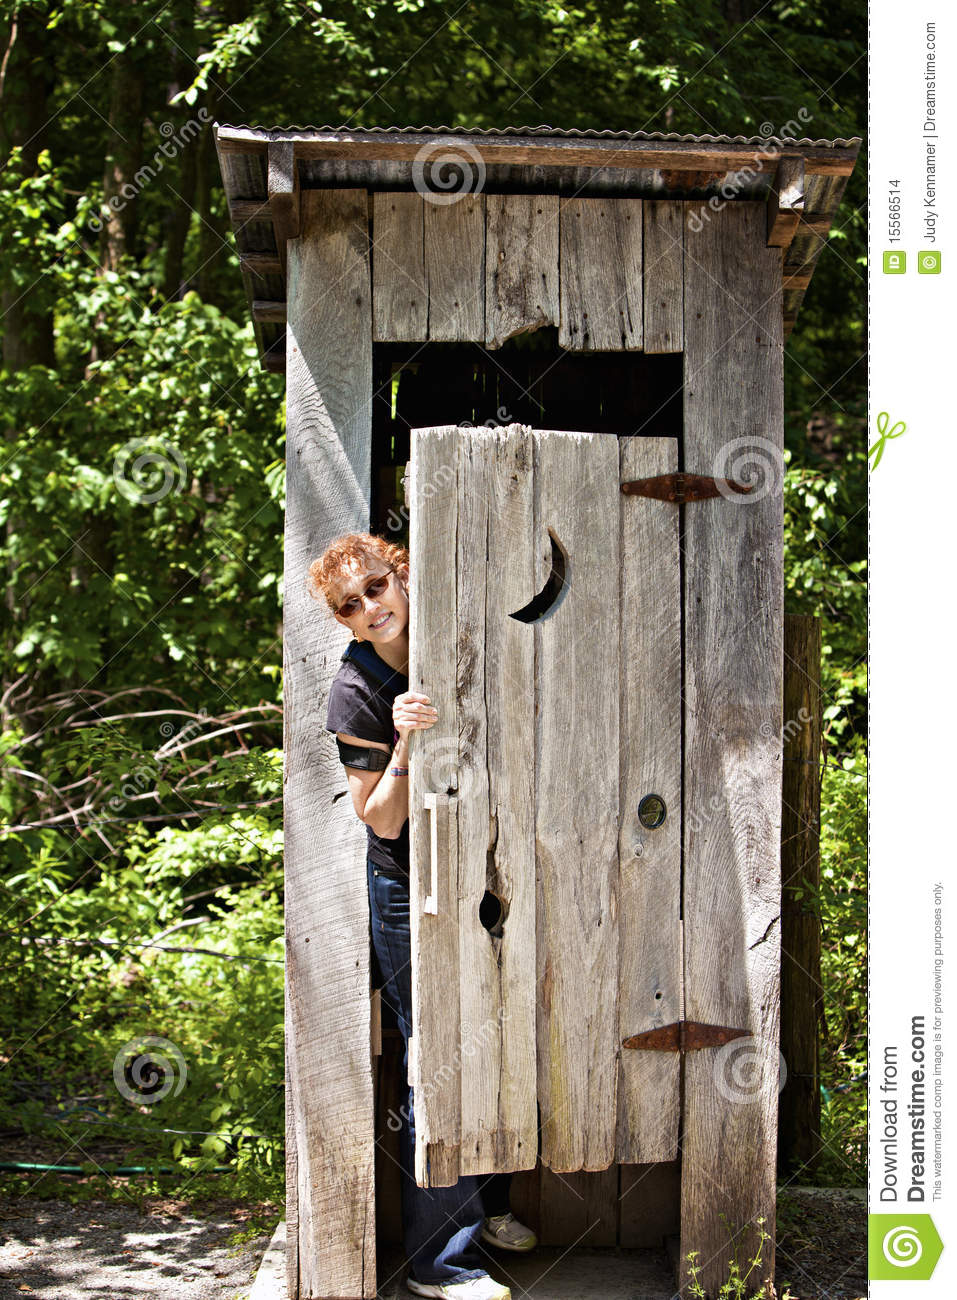 Outhouse With Woman Peeking Out Stock Photo Image 15566514